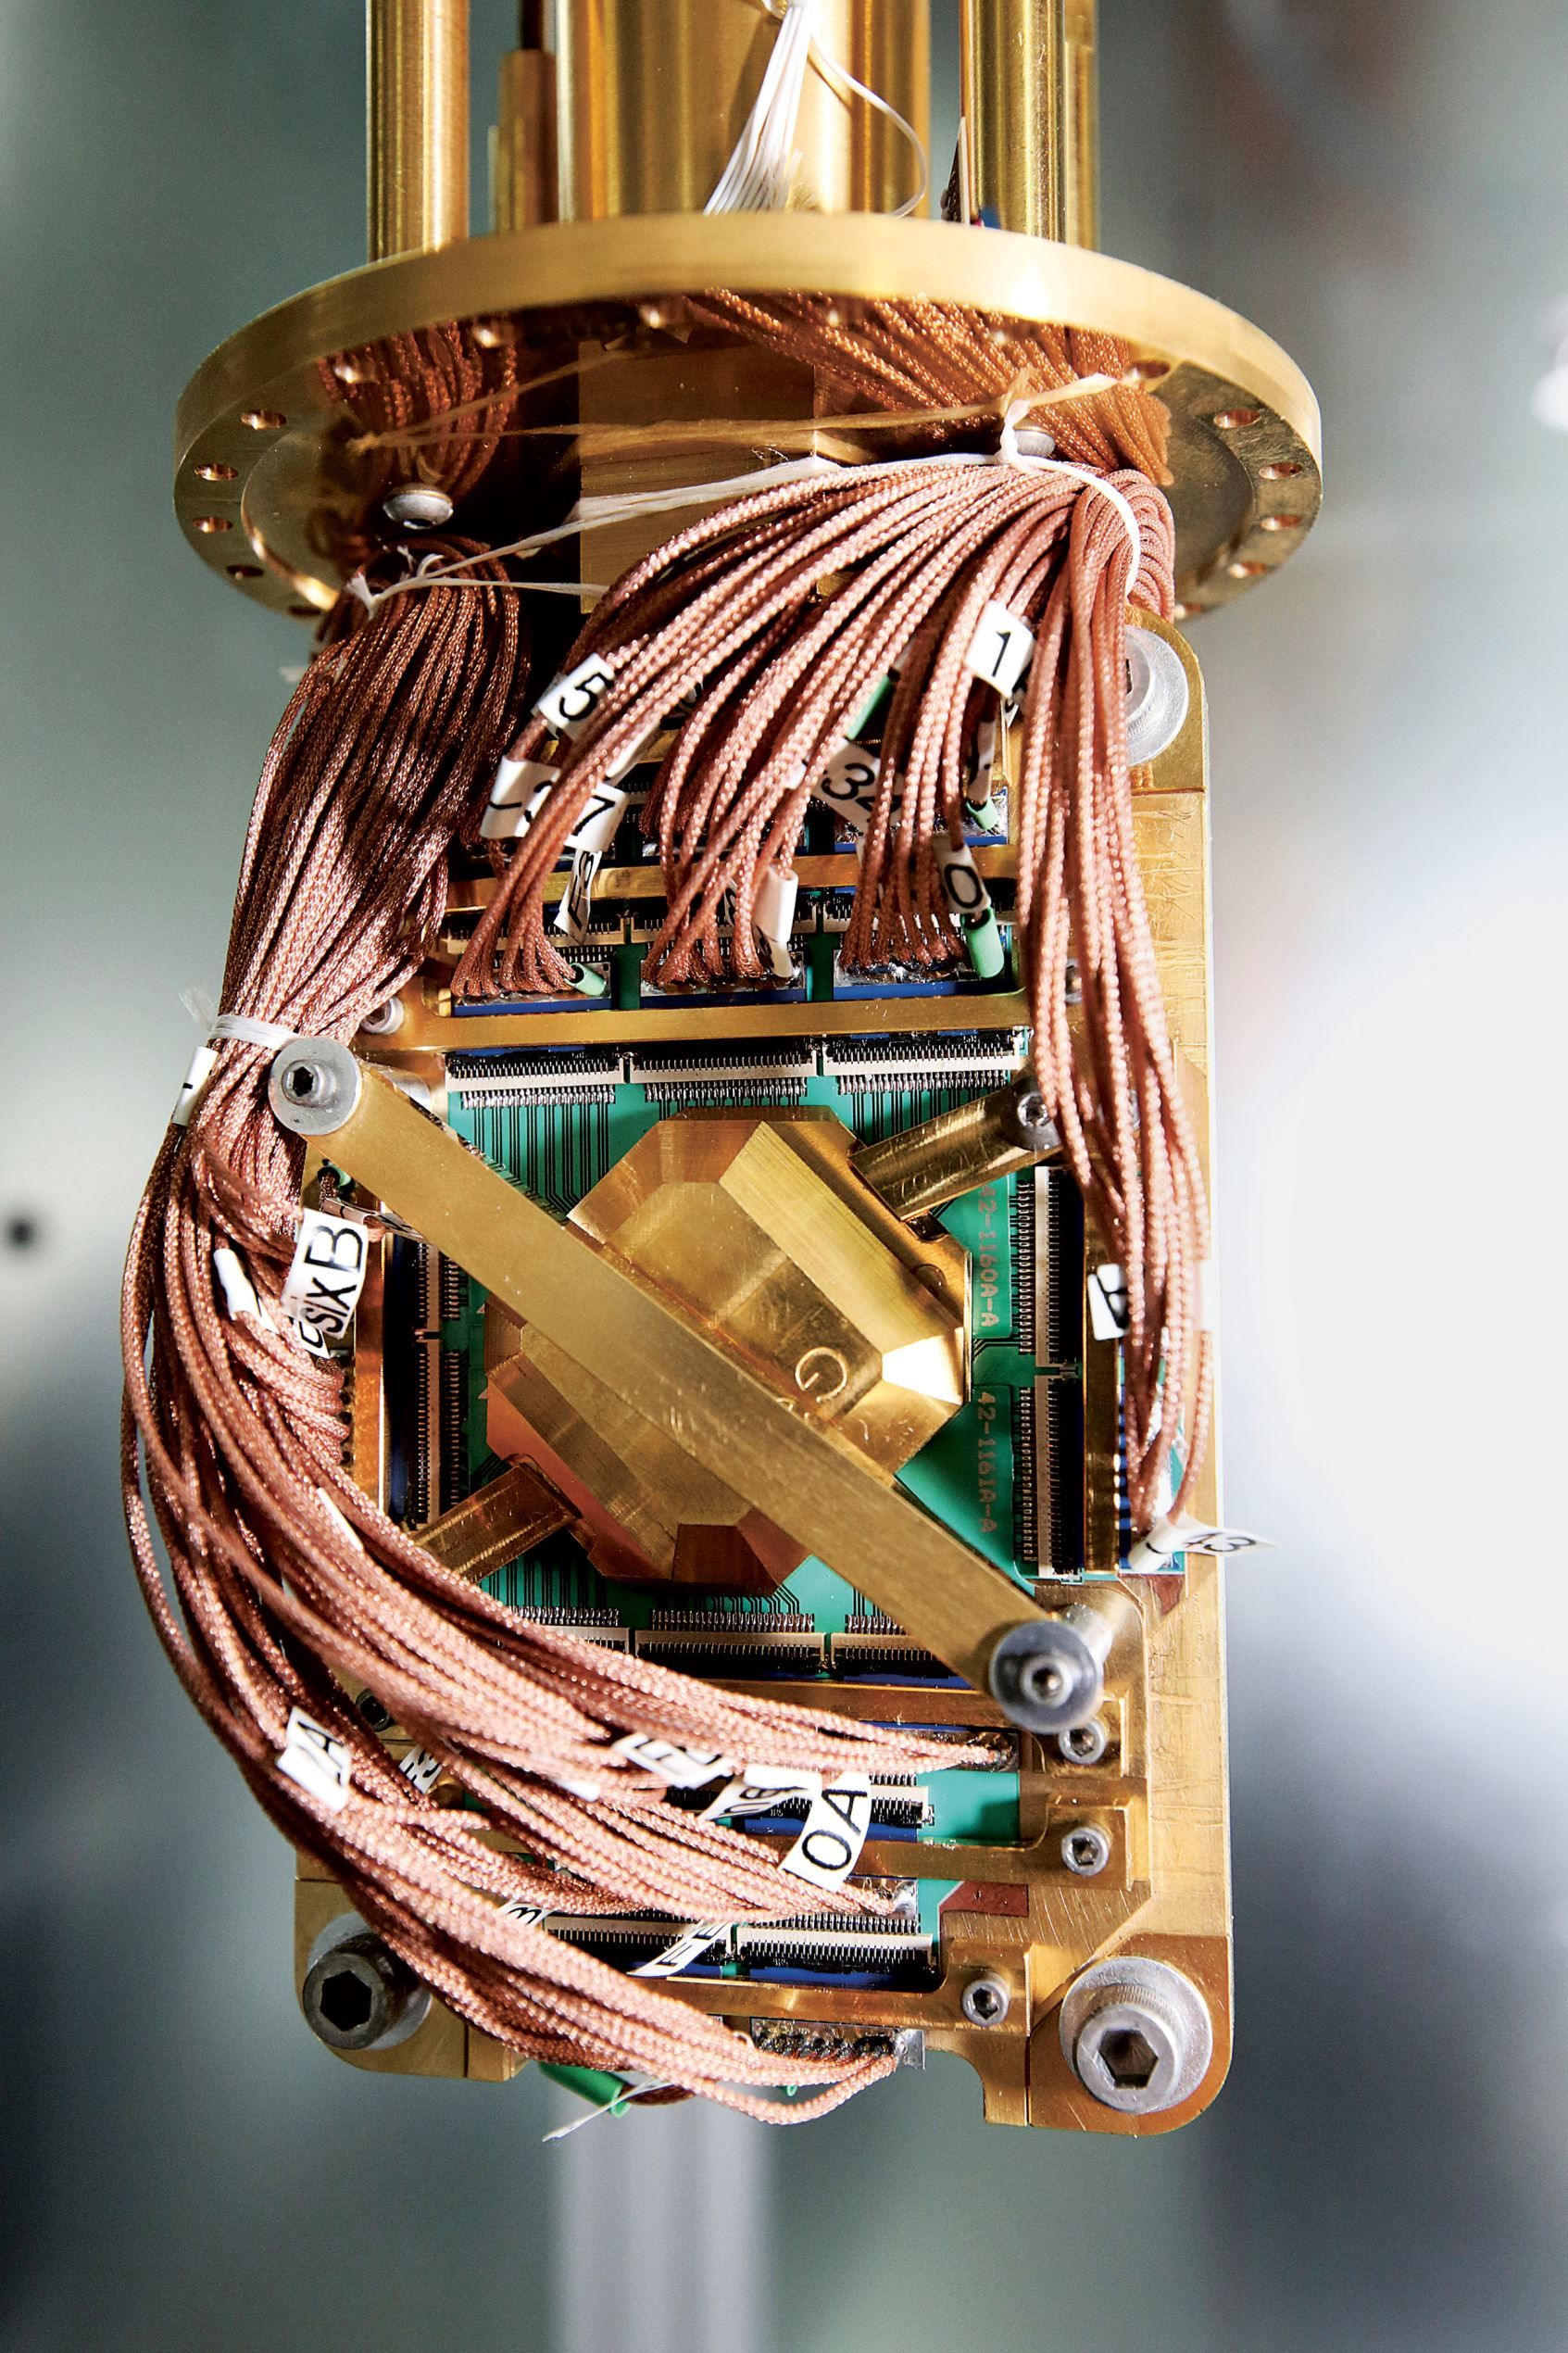 hight resolution of d wave systems quantum computer processor is pictured without its protective thermal canisters at t kim stallknecht the new york times redux